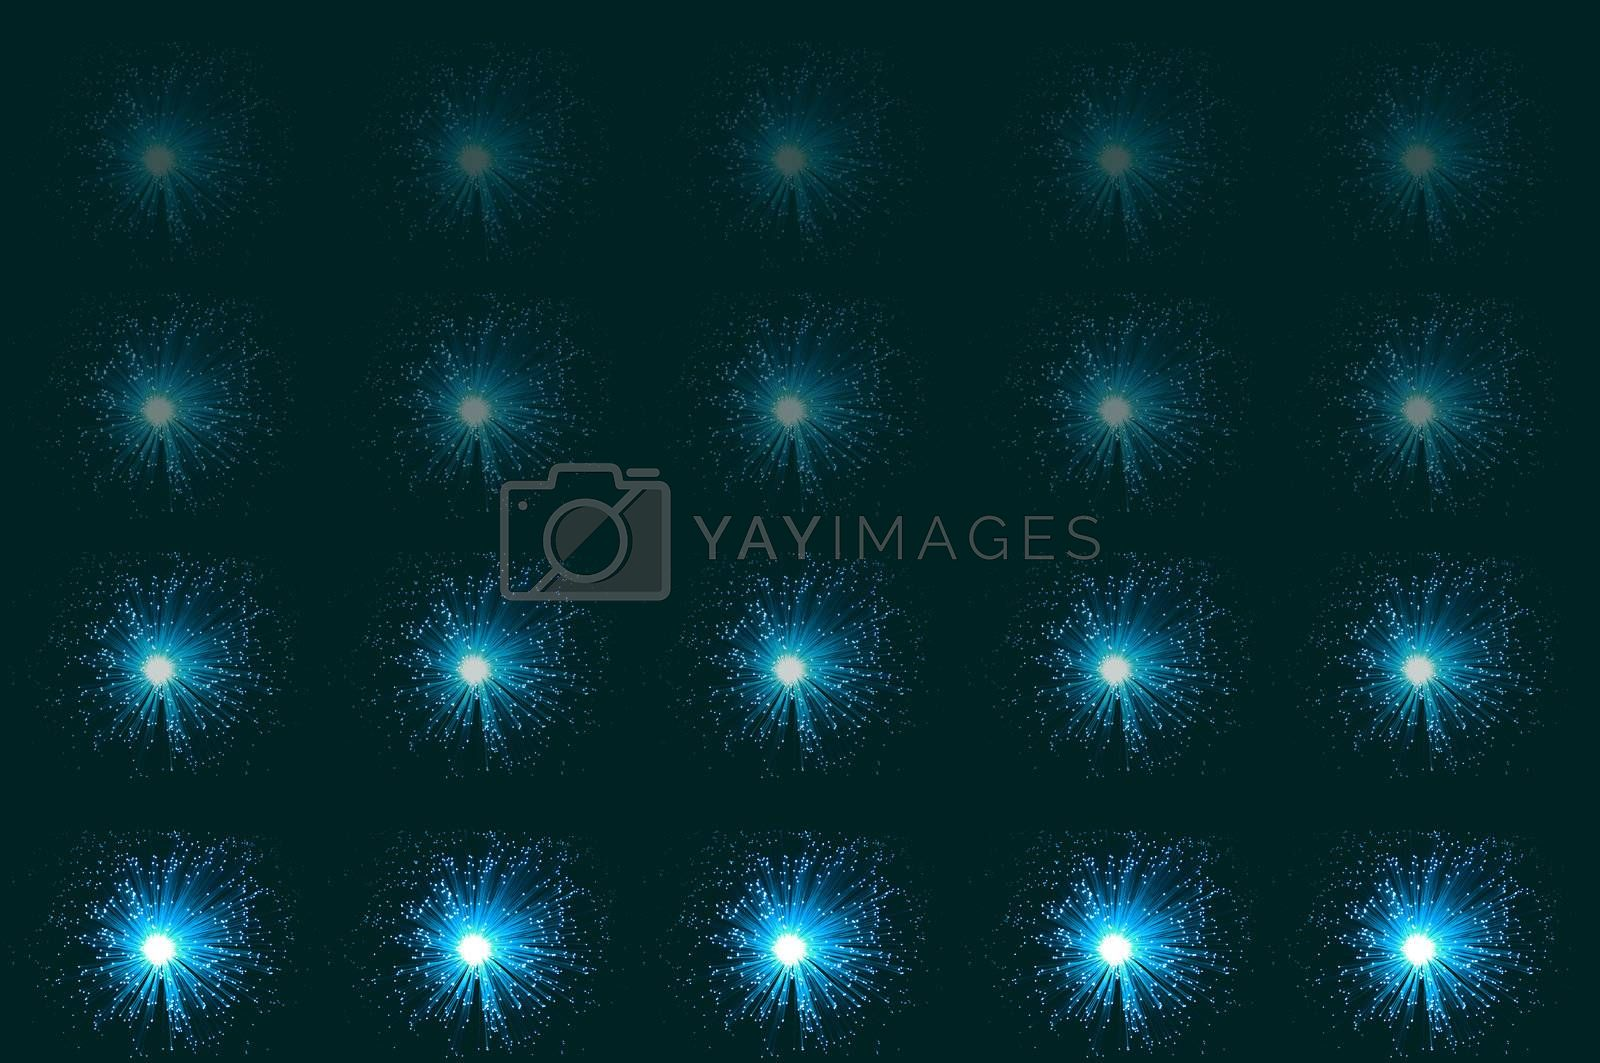 Twenty small illuminated aqua coloured fibre optic lamps in horizontal line formations with each line fading progressively towards the top of the image. Aqua-green background.